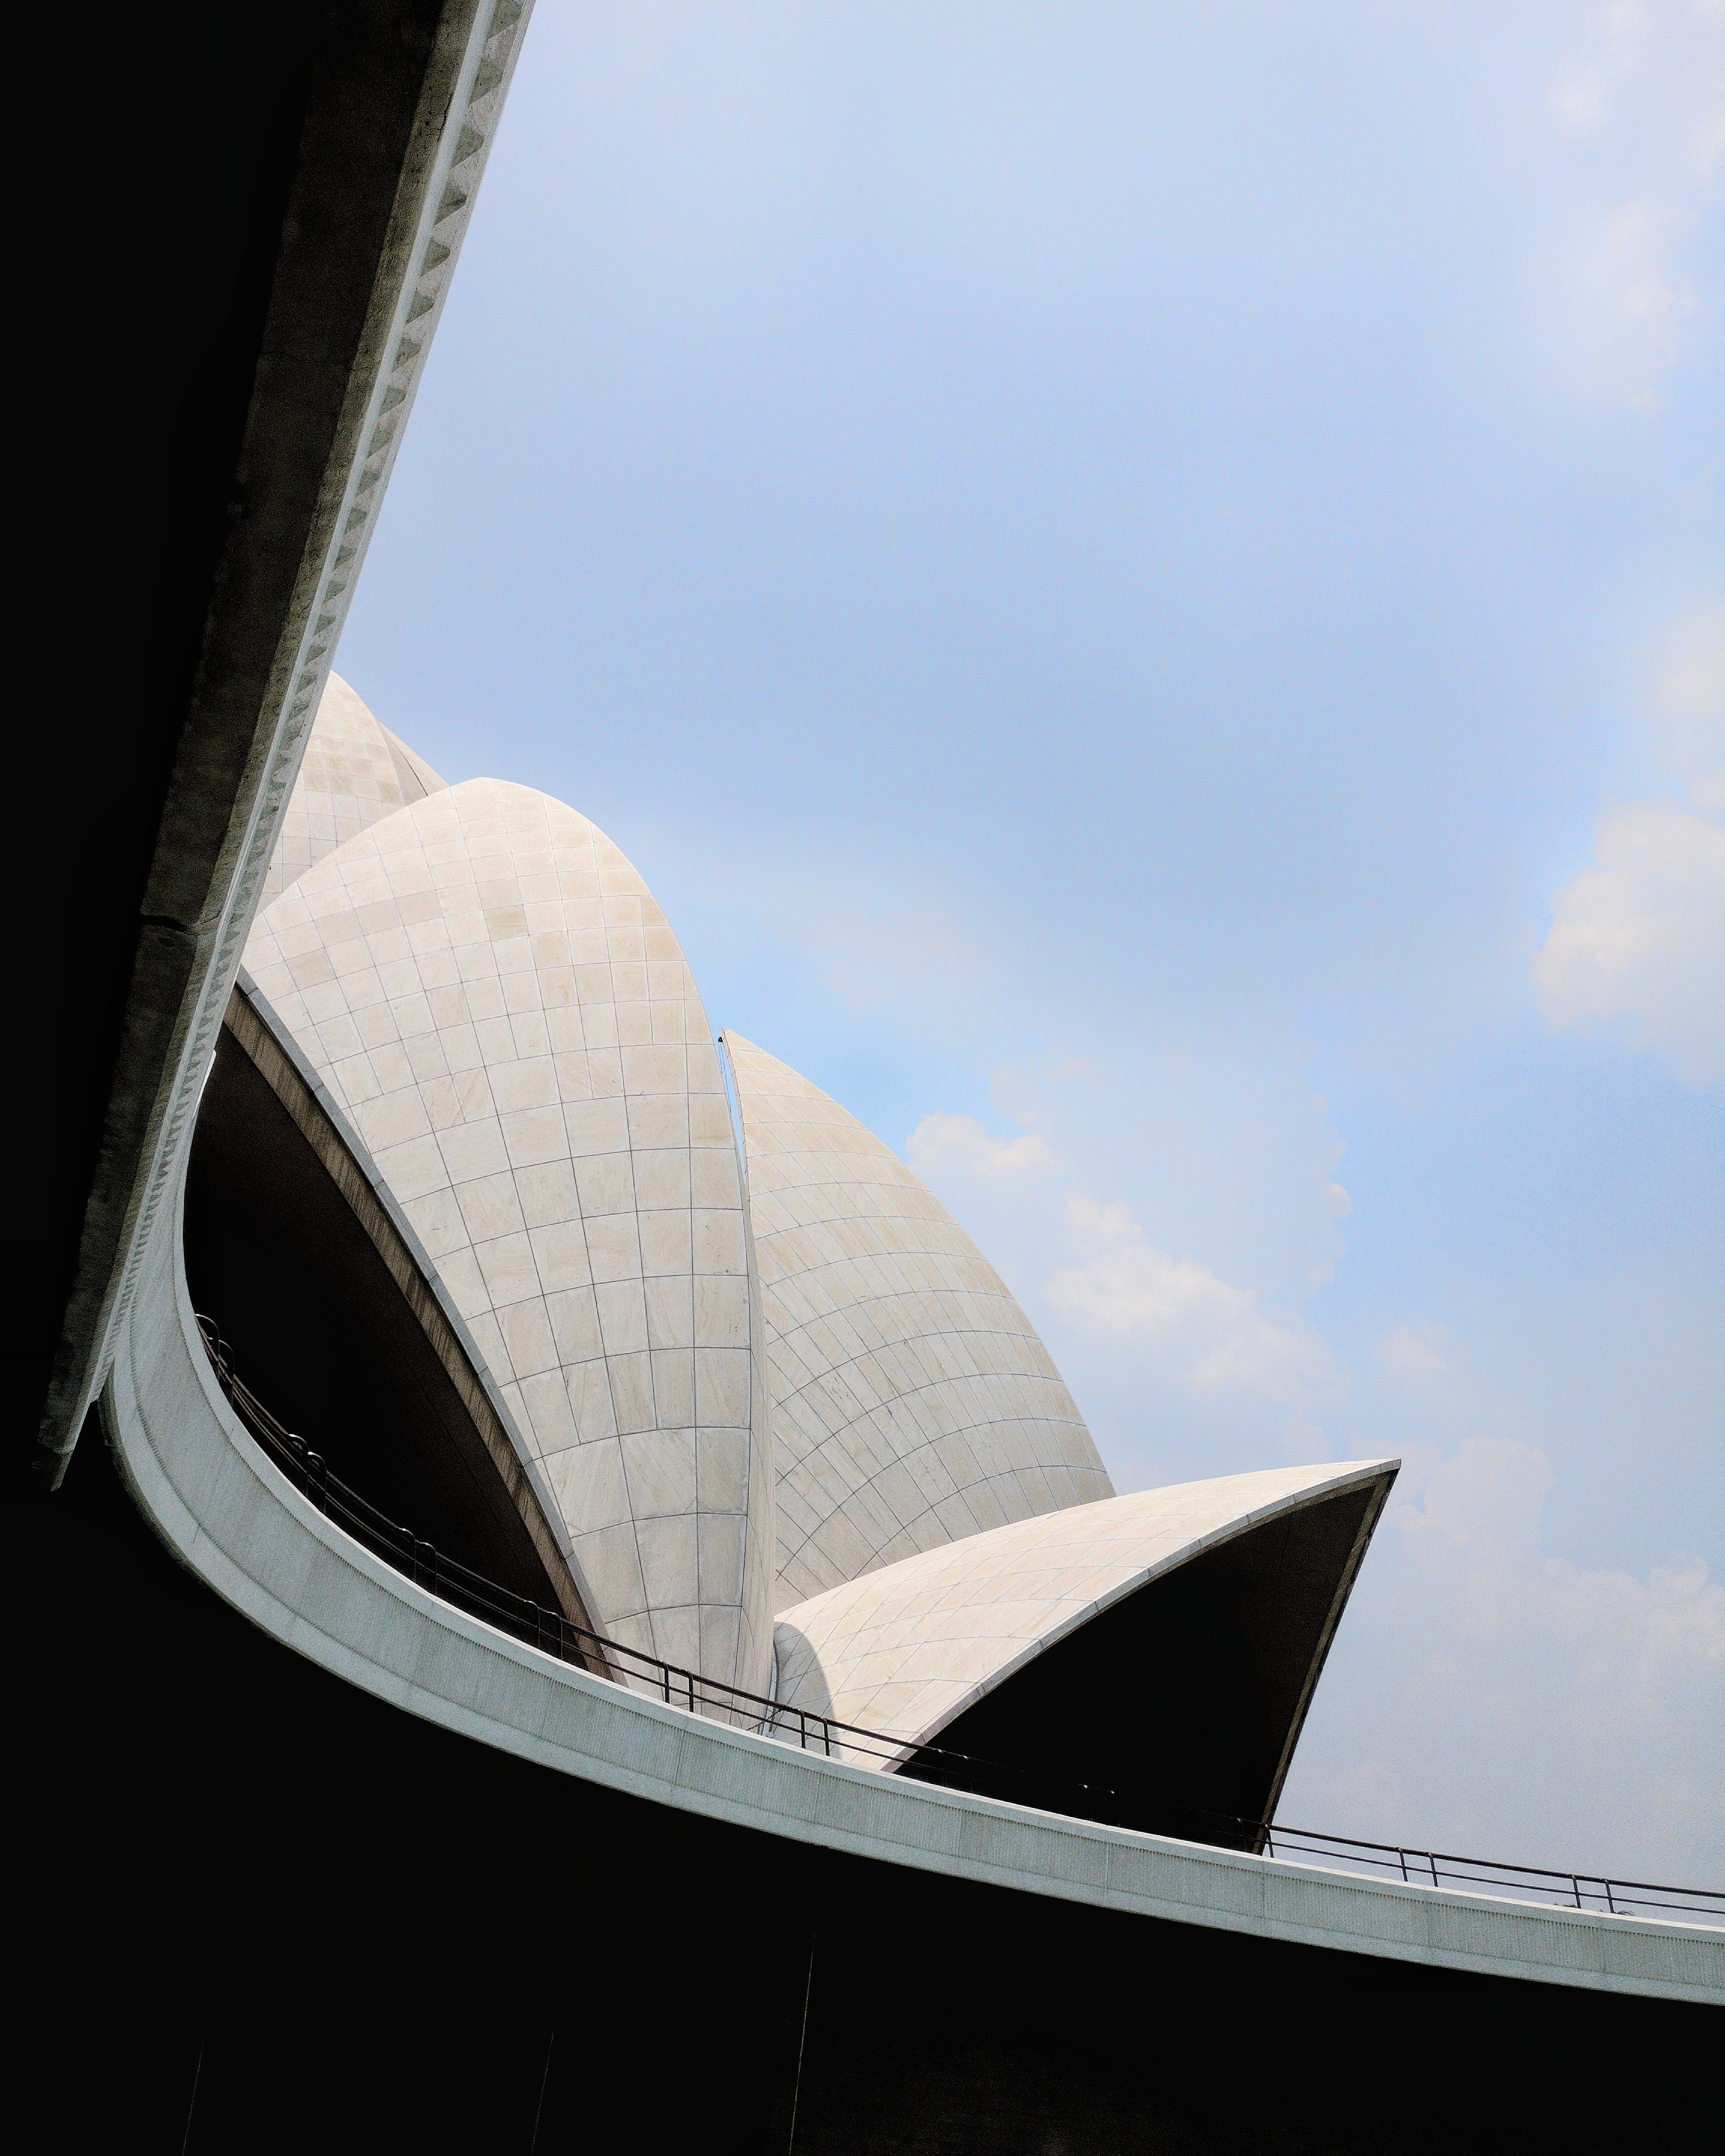 The shell-like facade of Lotus Temple in New Delhi against a pale blue sky